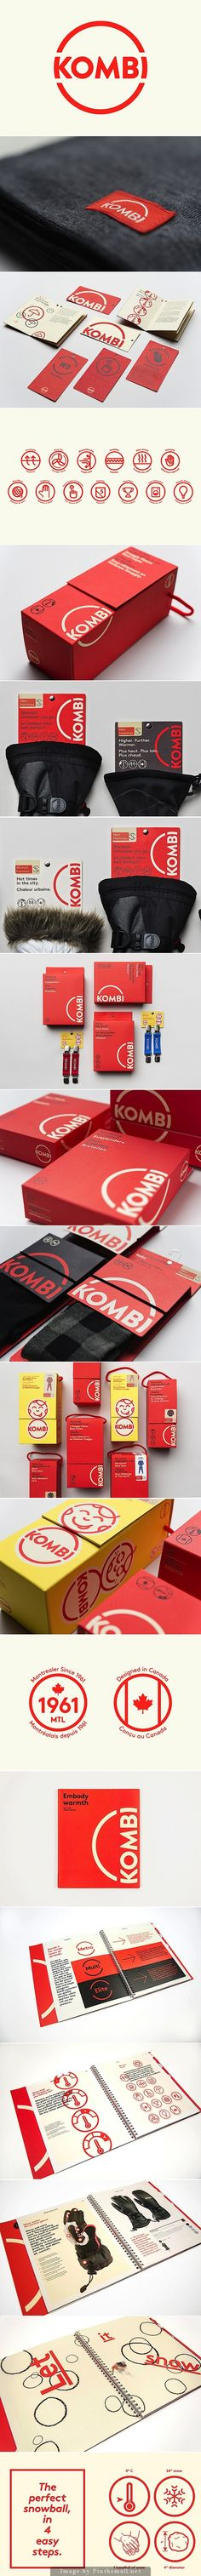 Love Kombi product identity, packaging branding, neat color scheme with natural yet popping color Gfx Design, Design Logo, Brand Identity Design, Graphic Design Branding, Corporate Design, Corporate Identity, Visual Identity, Design Agency, Brochure Design